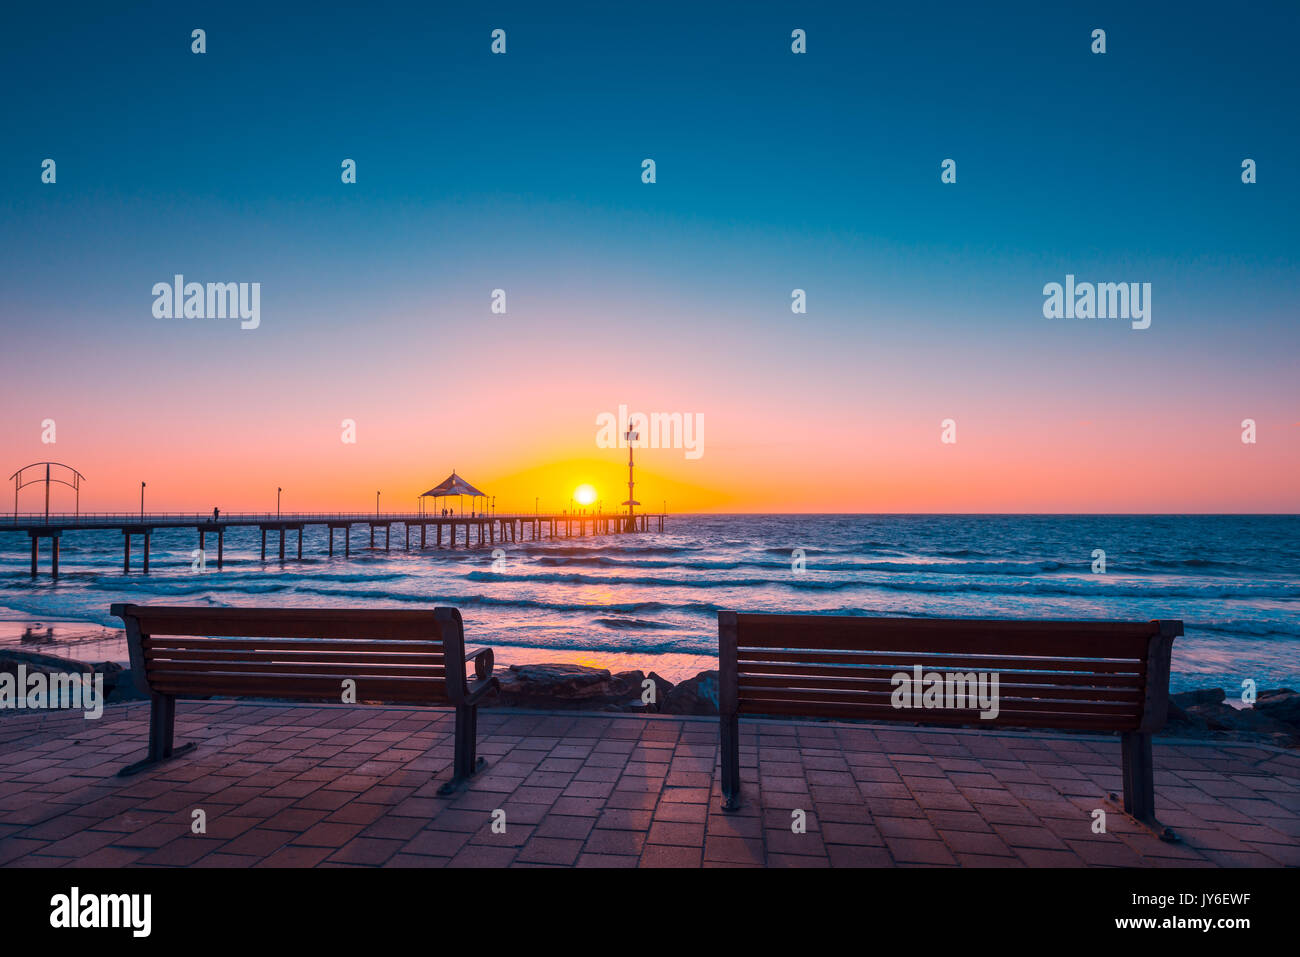 Brighton Beach view with people walking along jetty at sunset, South Australia Stock Photo